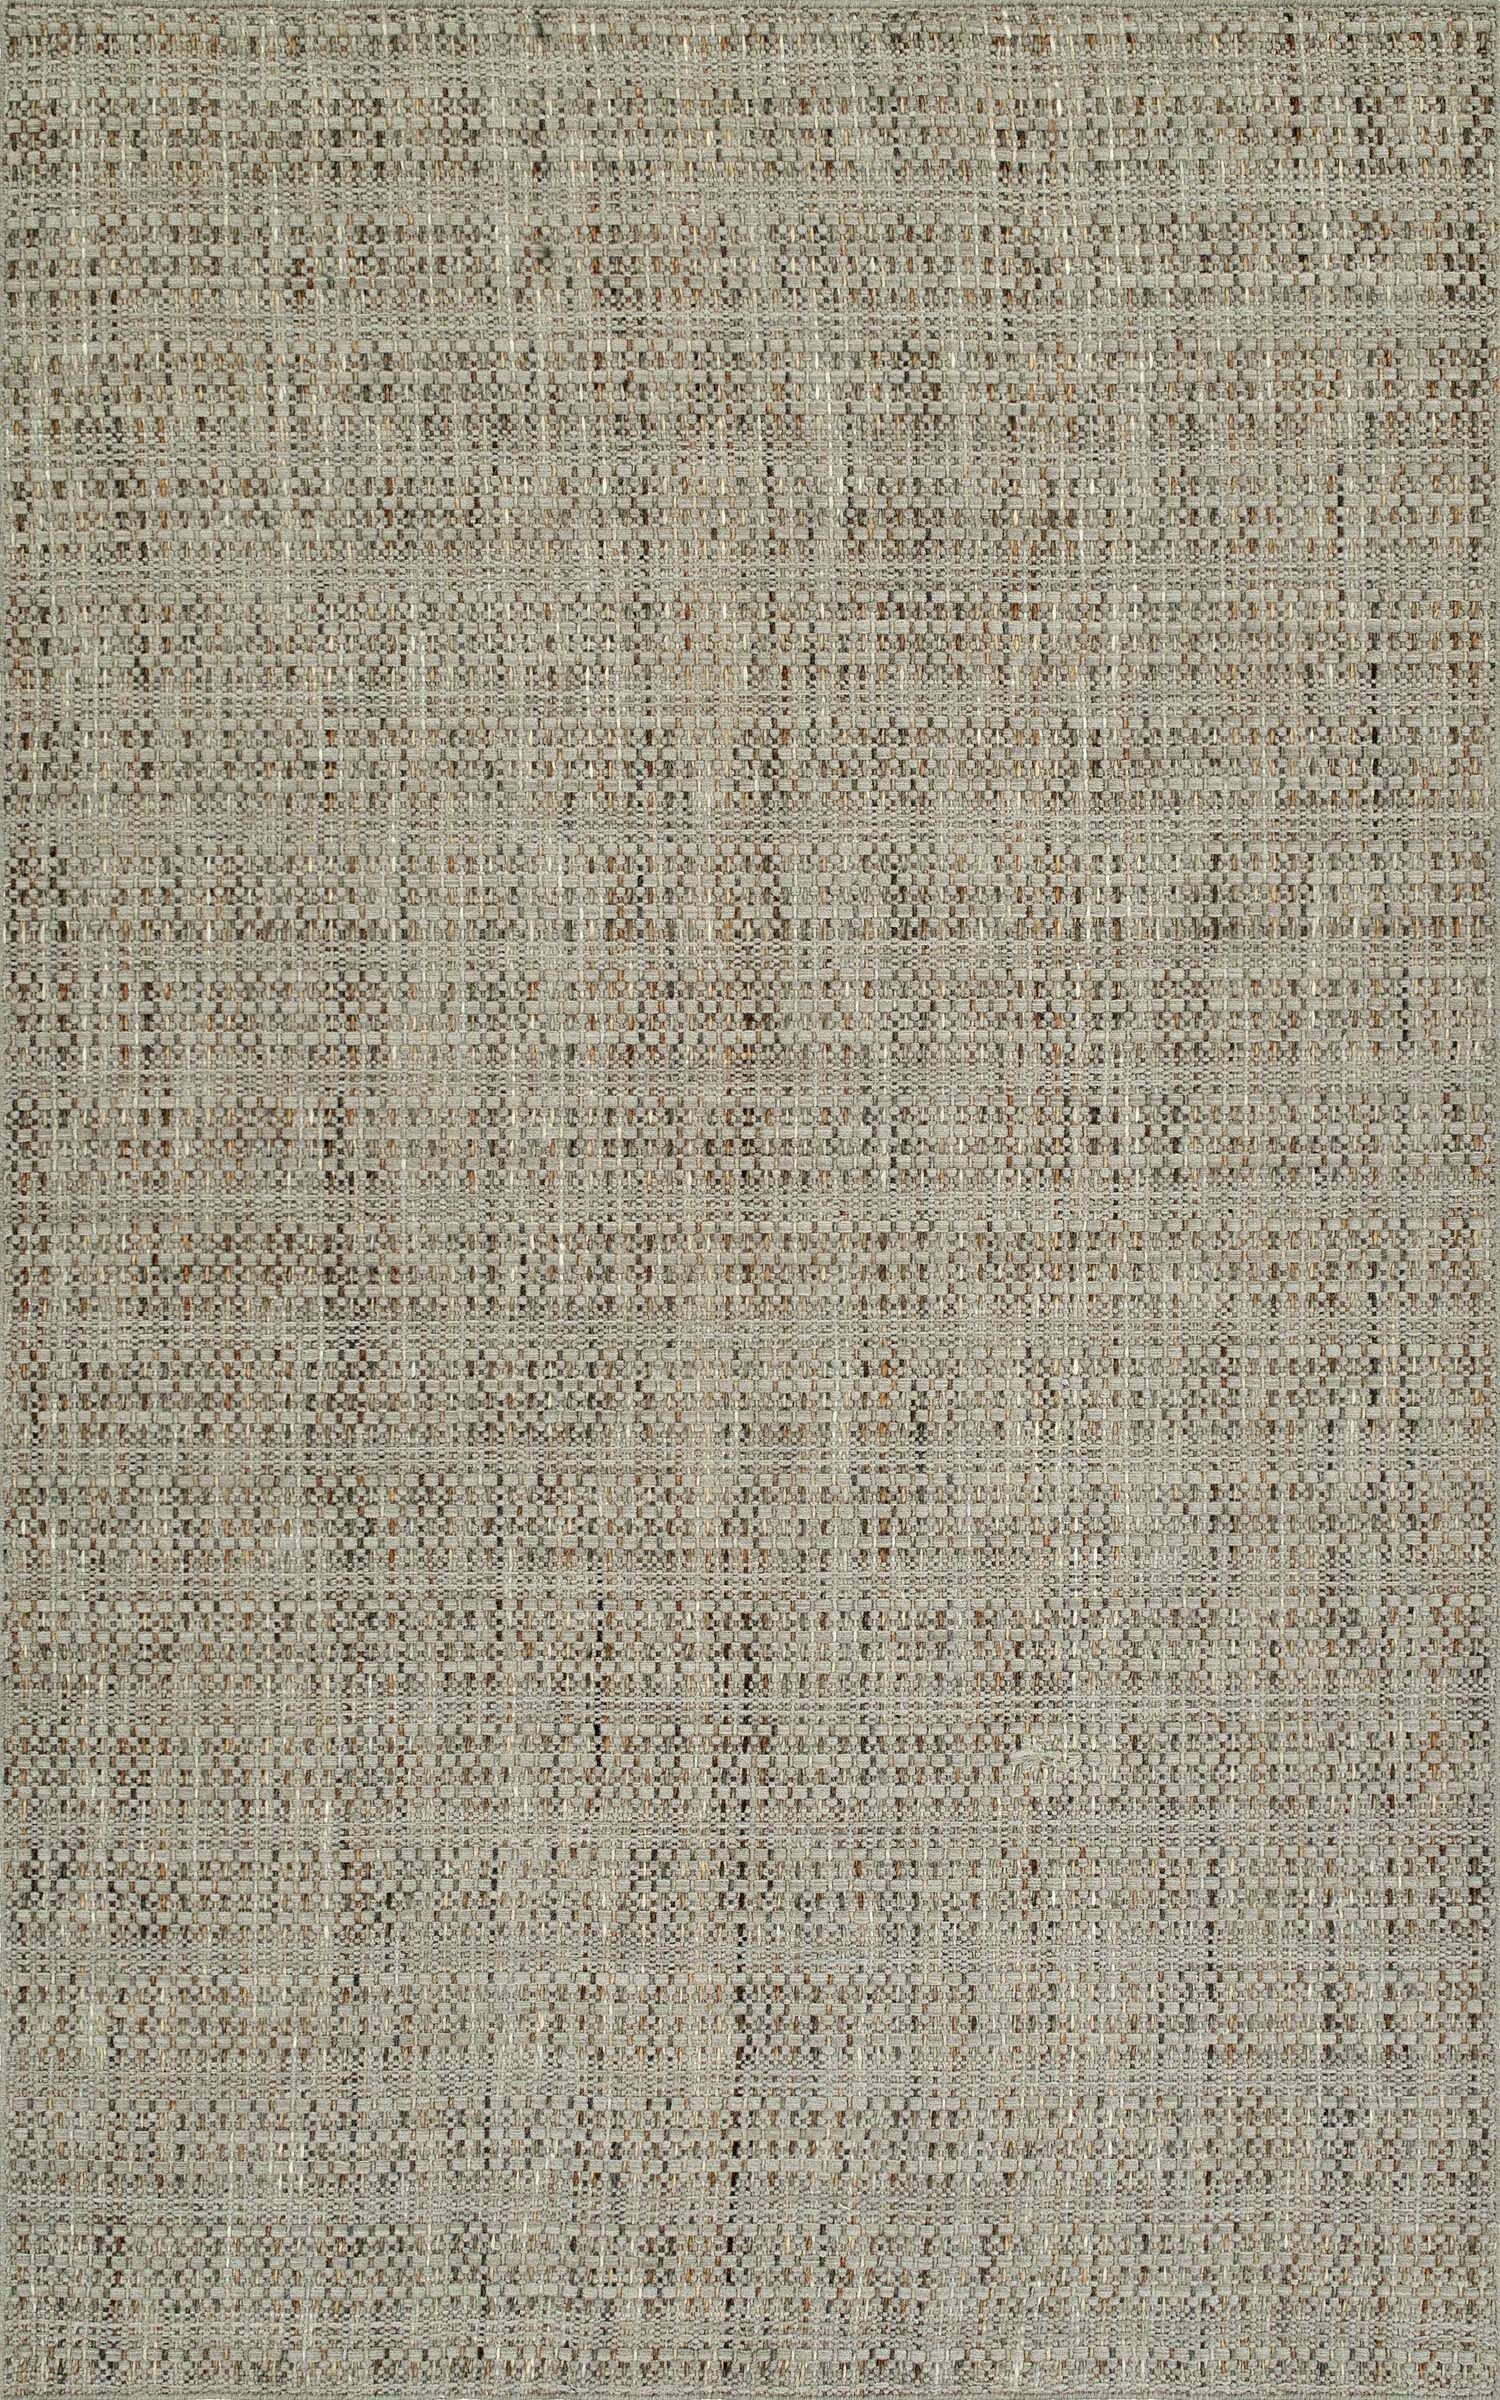 Nepal Hand-Loomed Tufted Wool Taupe Area Rug Rug Size: Rectangle 9' x 13'